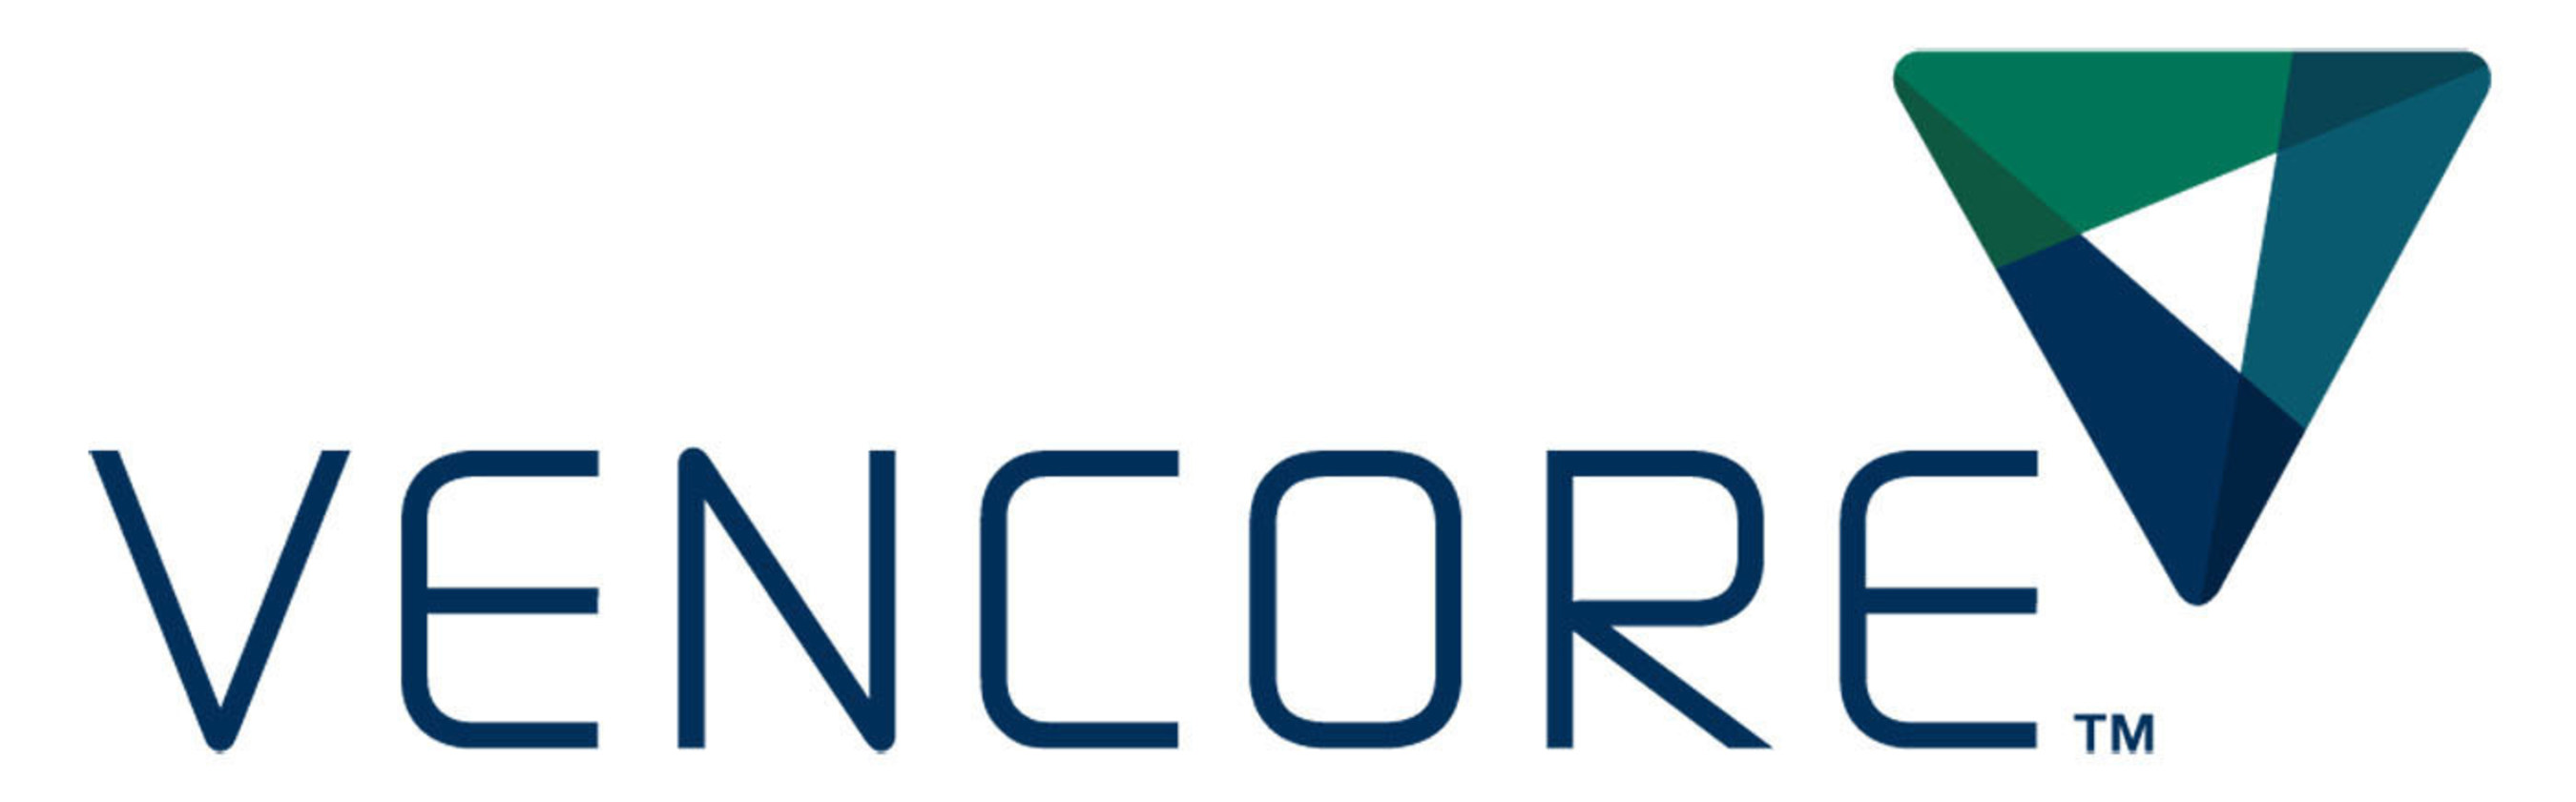 Vencore Labs Wins $11.8 Million DARPA Award For Advanced Cyber Networking